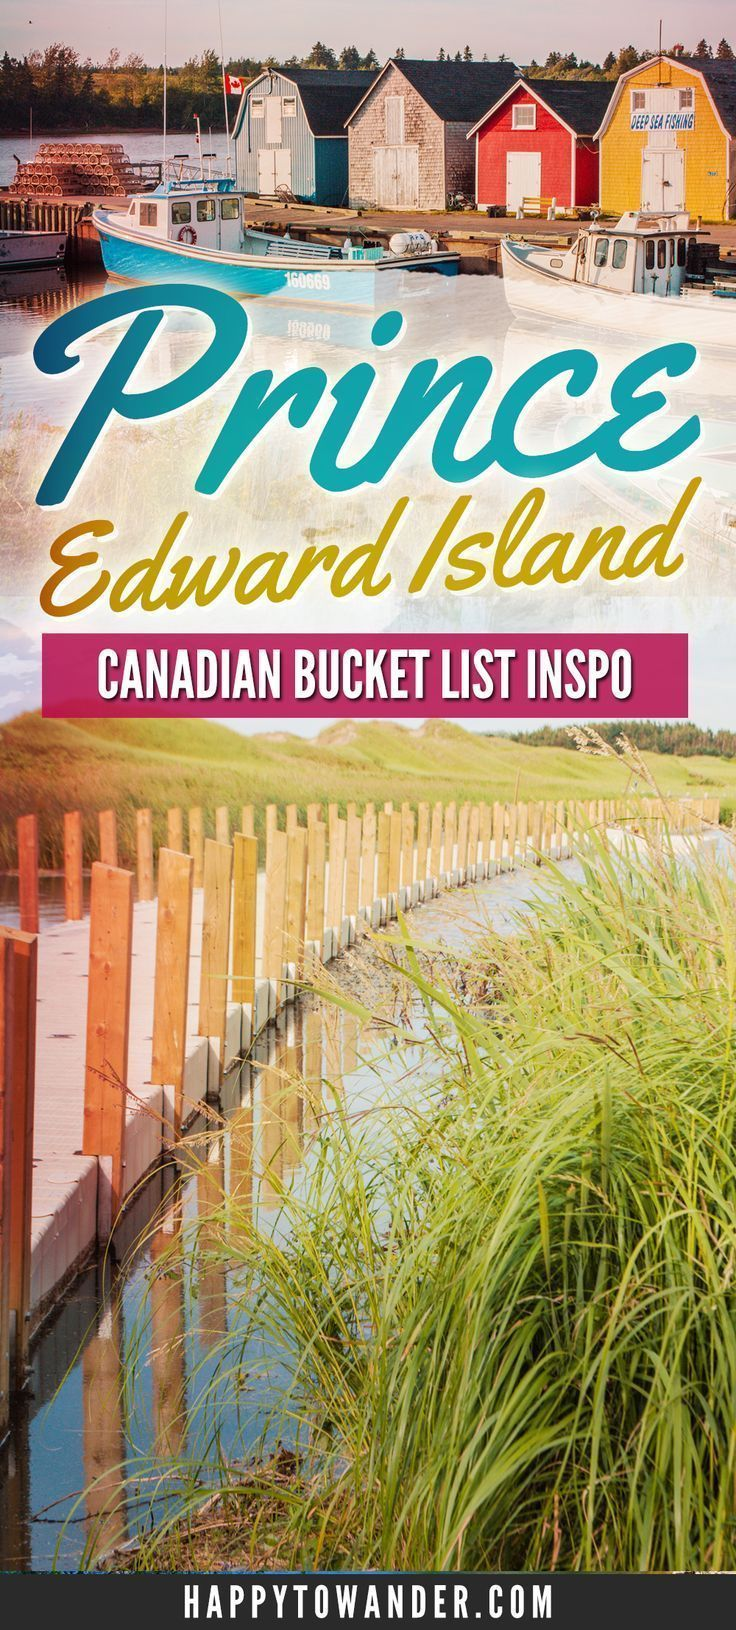 WOW! Prince Edward Island, Canada is definitely an underrated destination. Check out these great photos of Prince Edward Island to see why. #PEI #Canada #TravelDestinationsUsaCheap